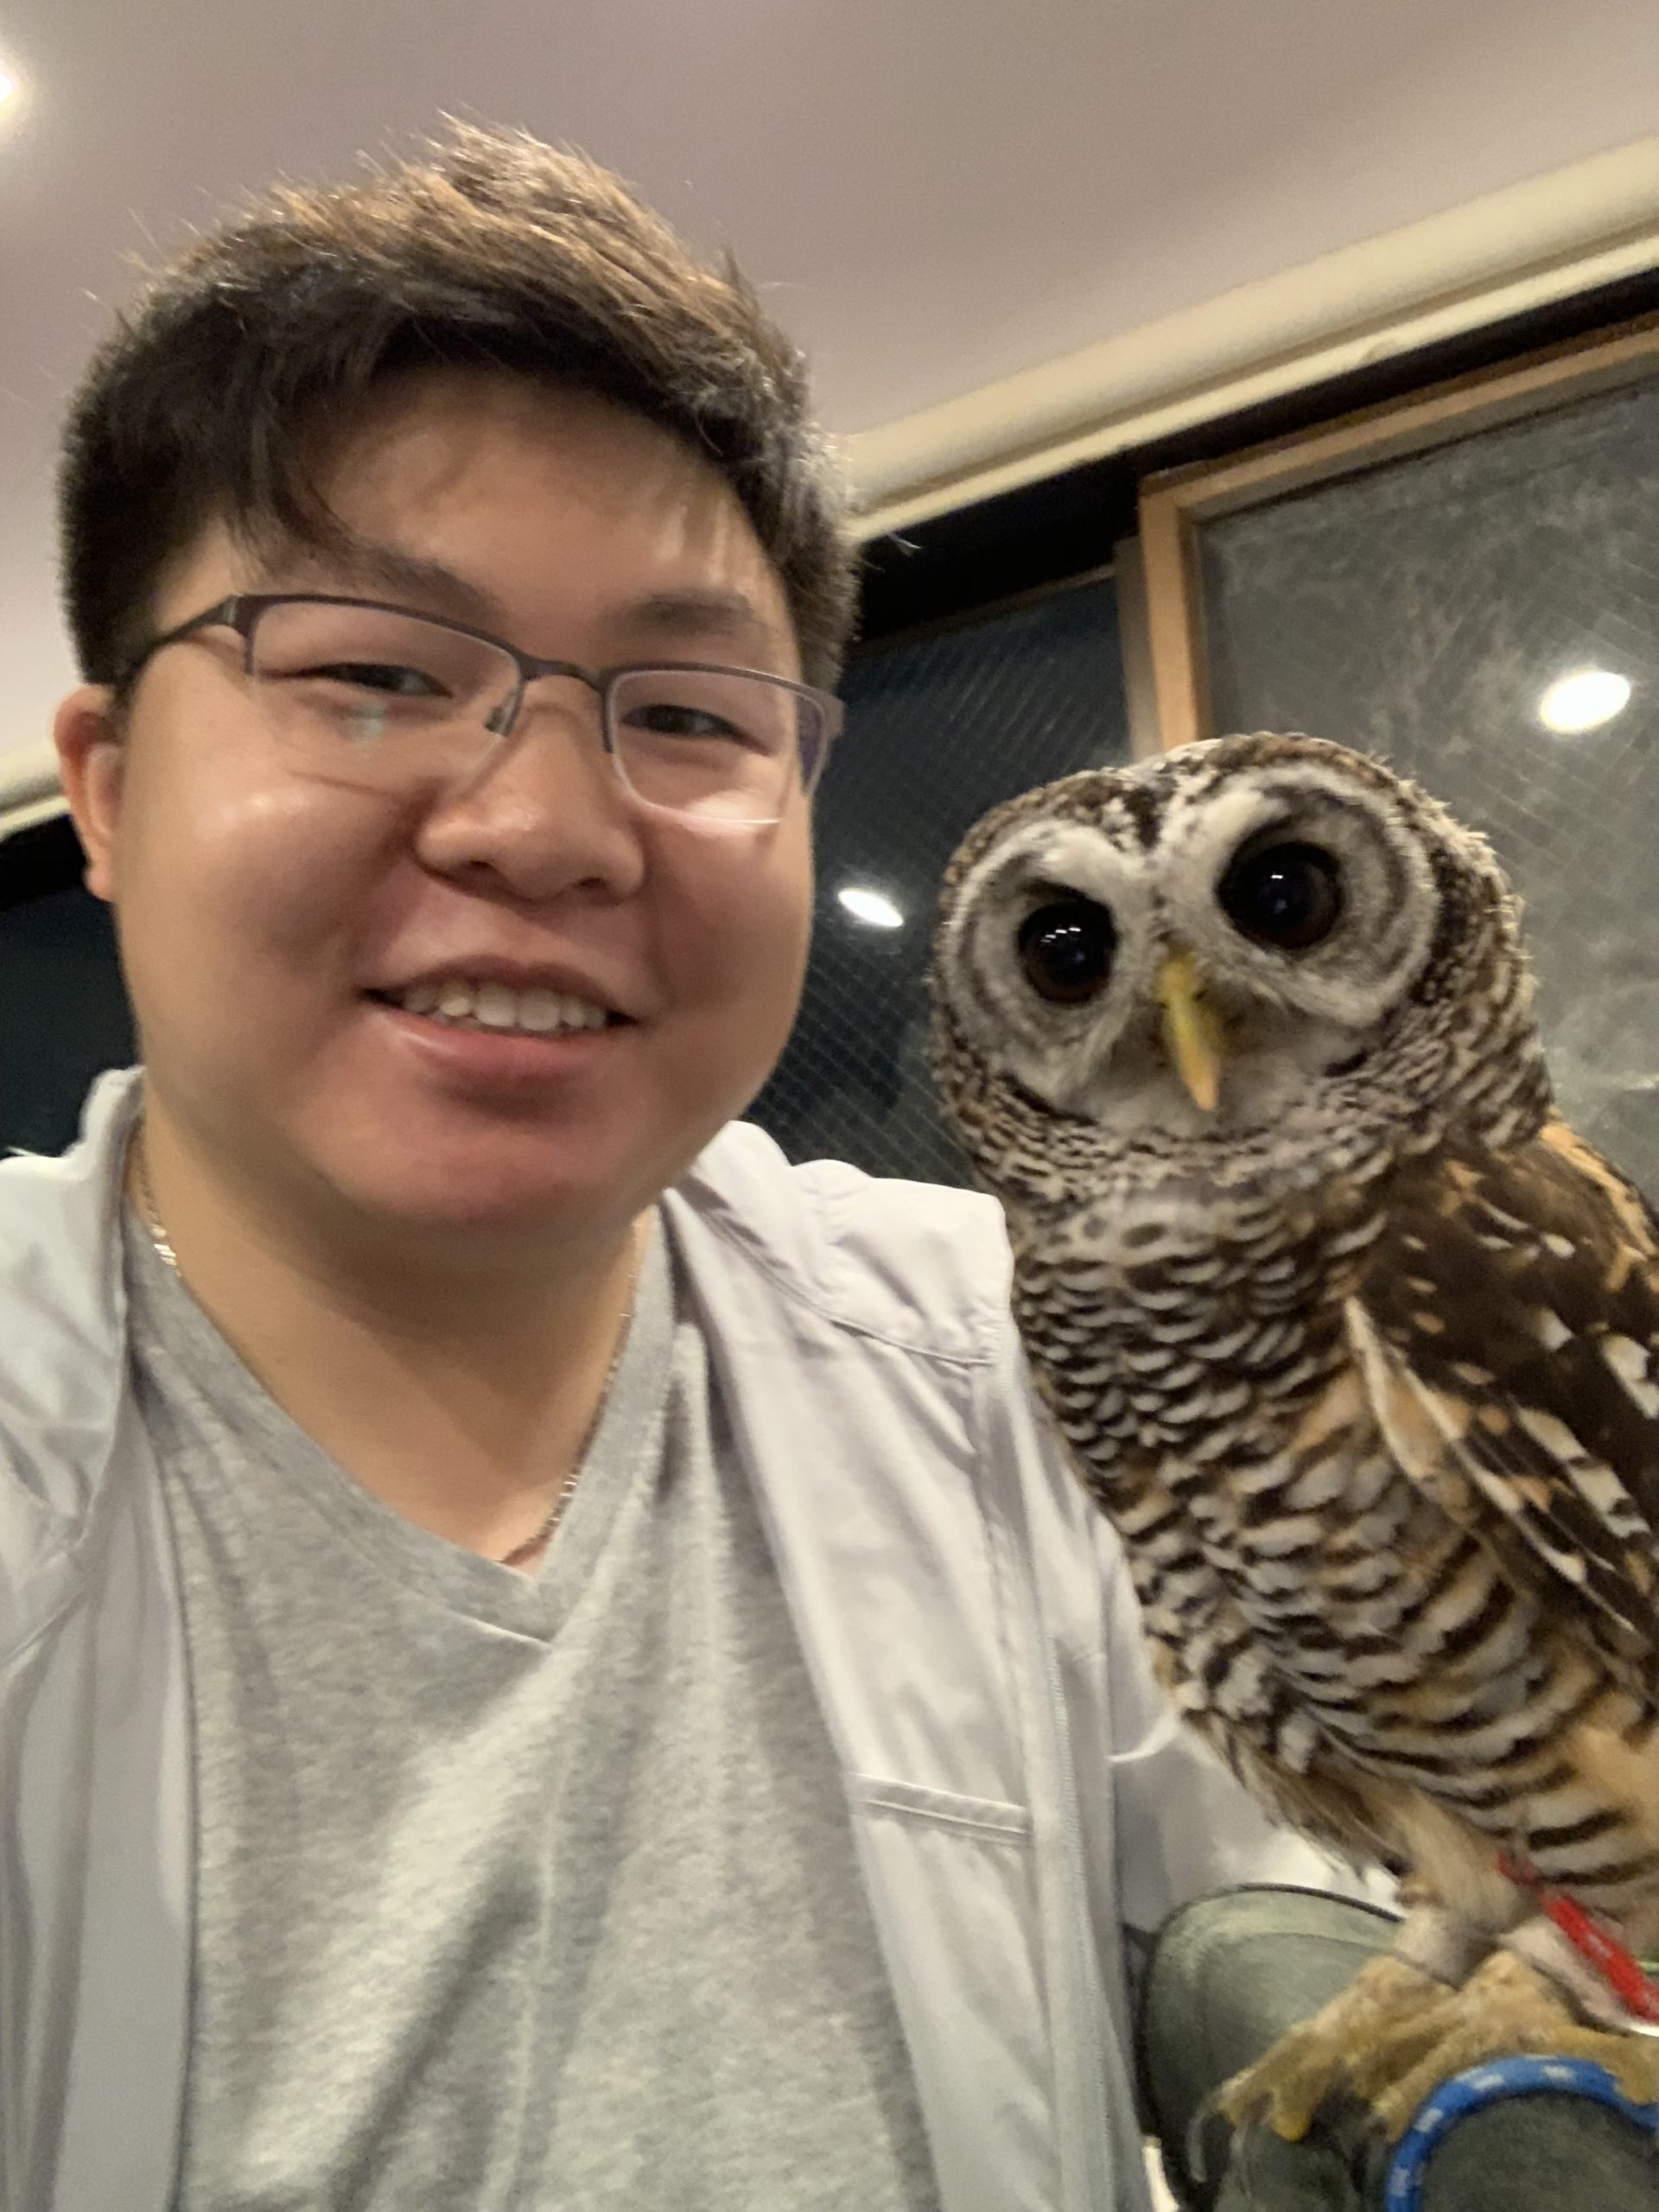 Self-taken photograph of Darrin and an owl standing on his arm